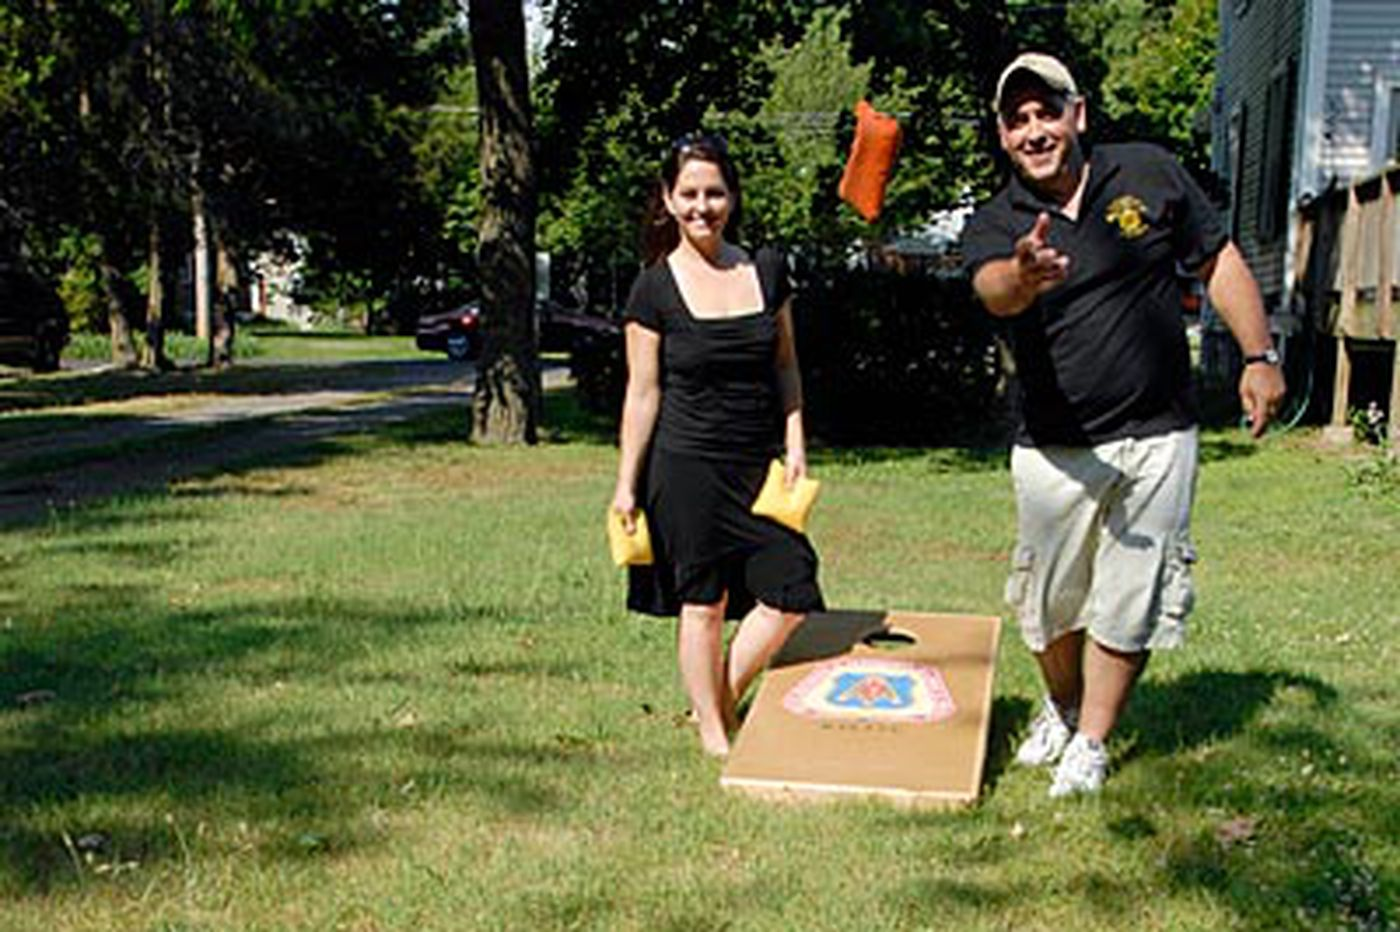 Kevin Riordan: Cornhole tournament to benefit wounded veterans